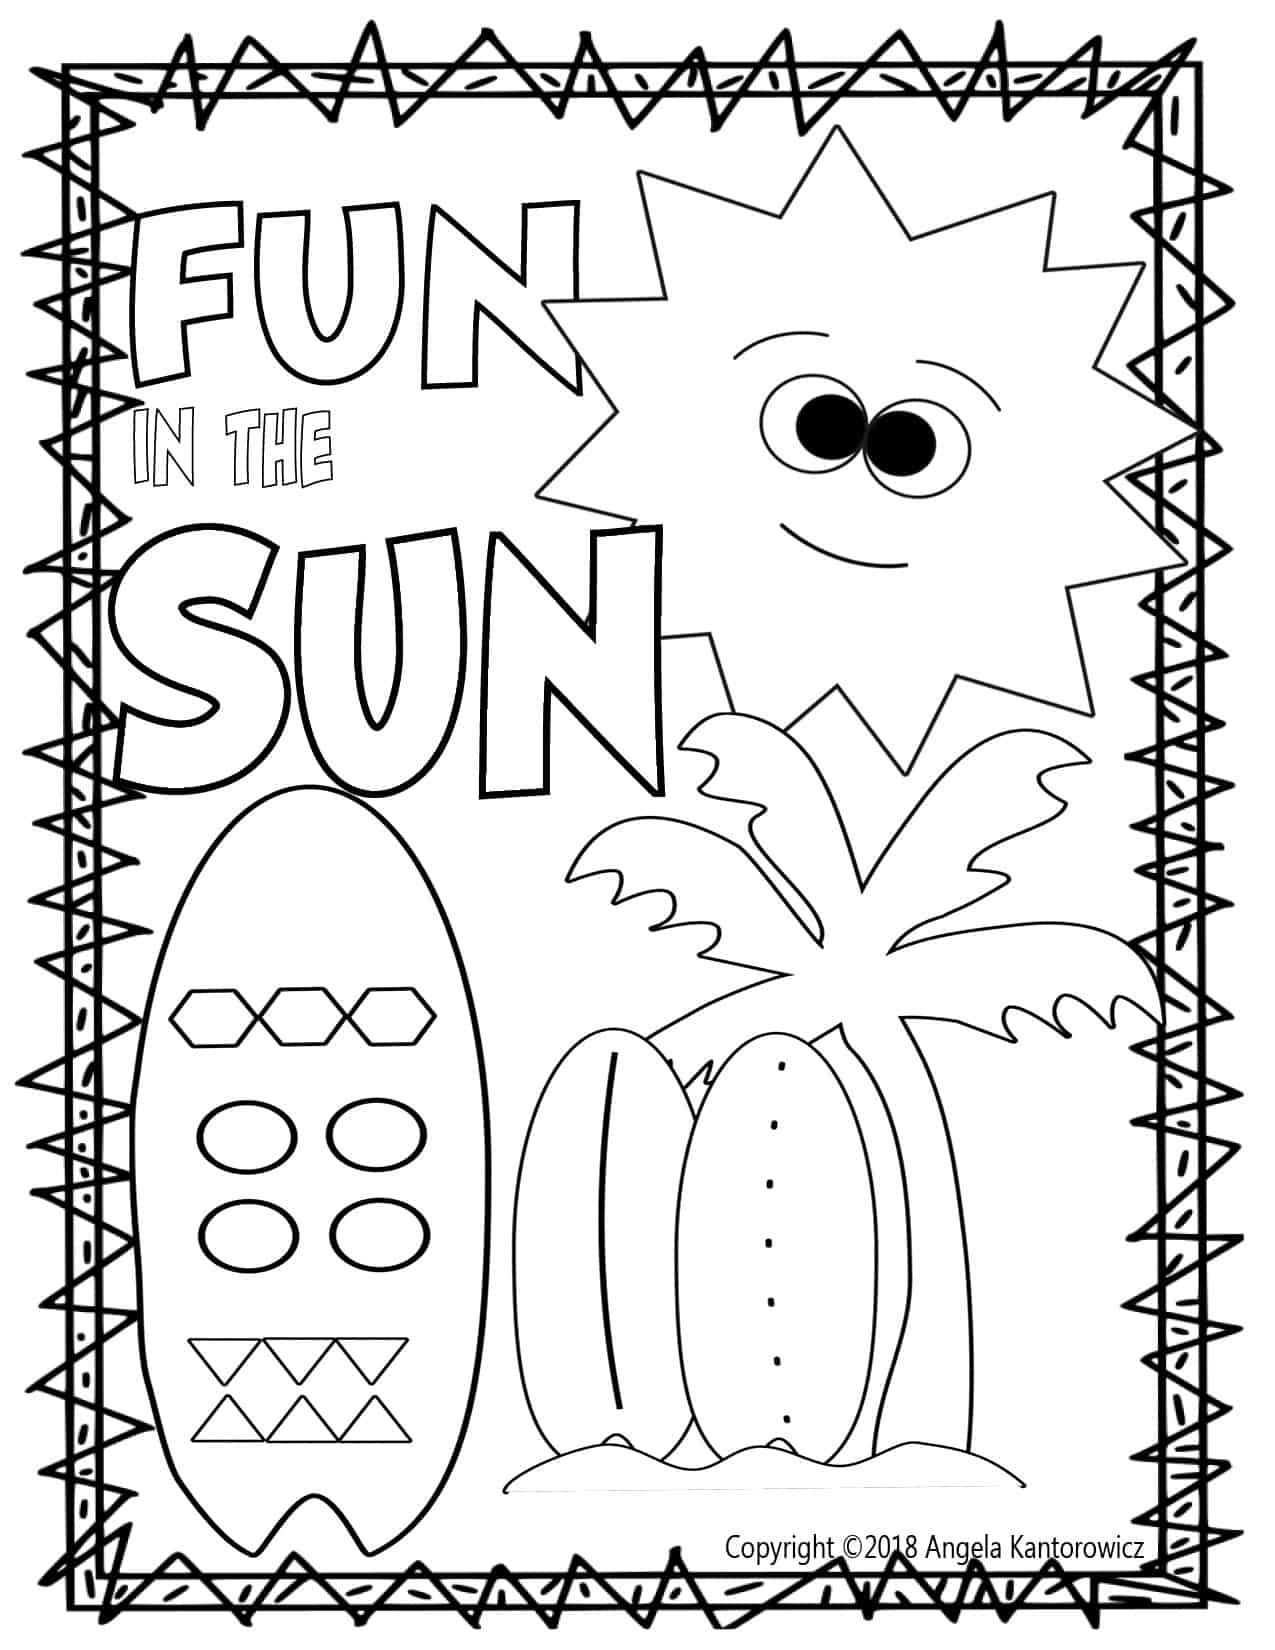 Fun In The Sun Color Sheet Free Teacher Resource Free